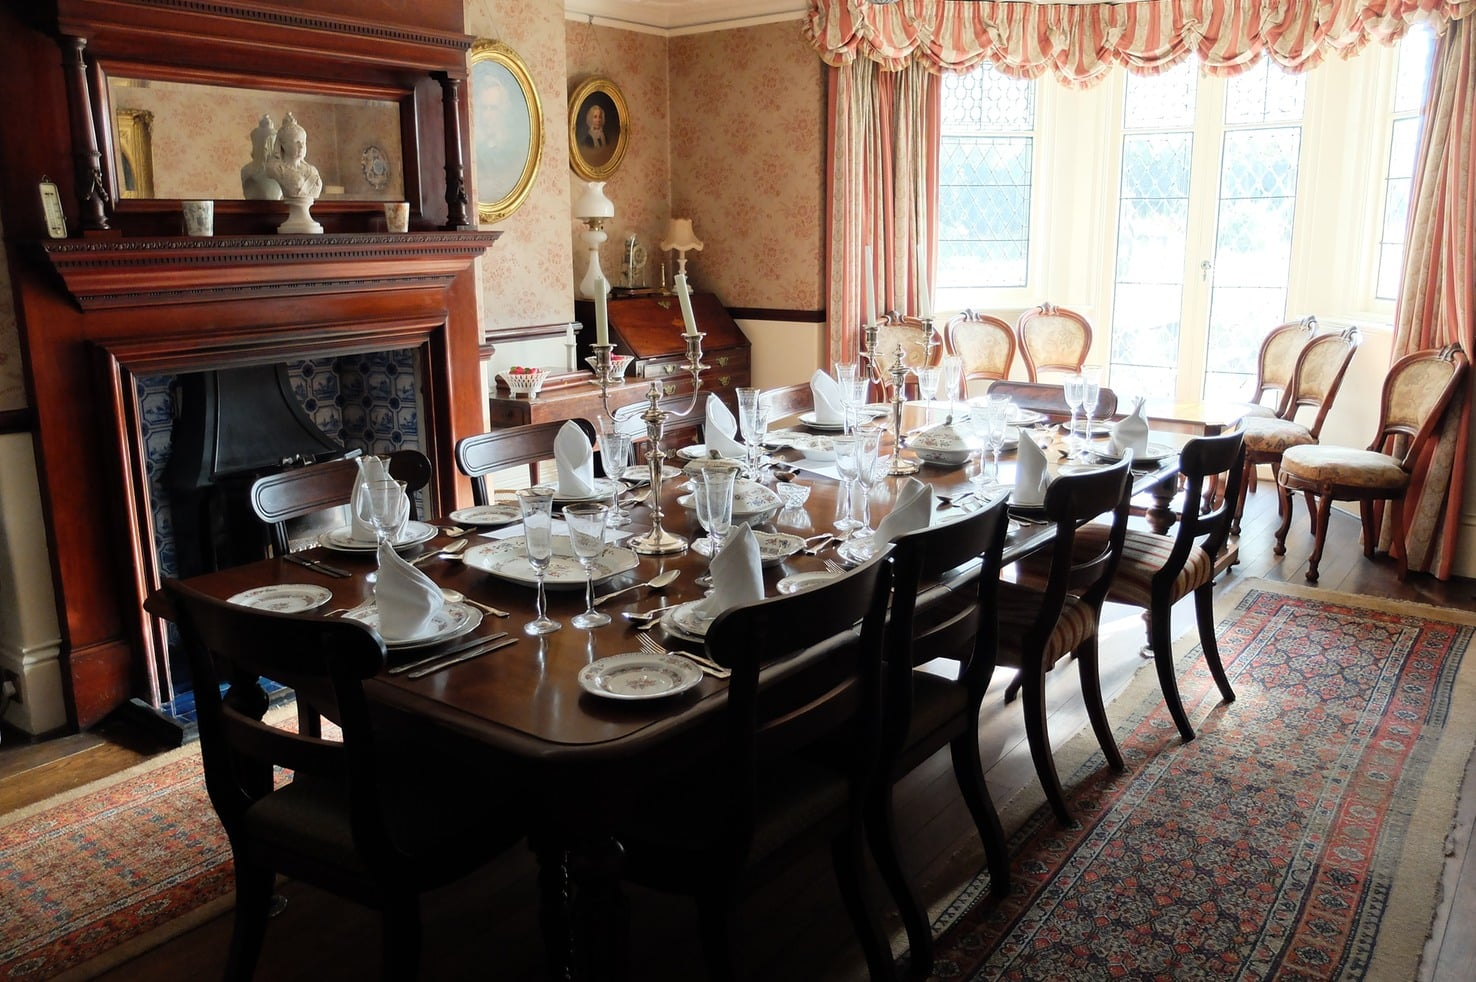 The dining room at Reveley Lodge